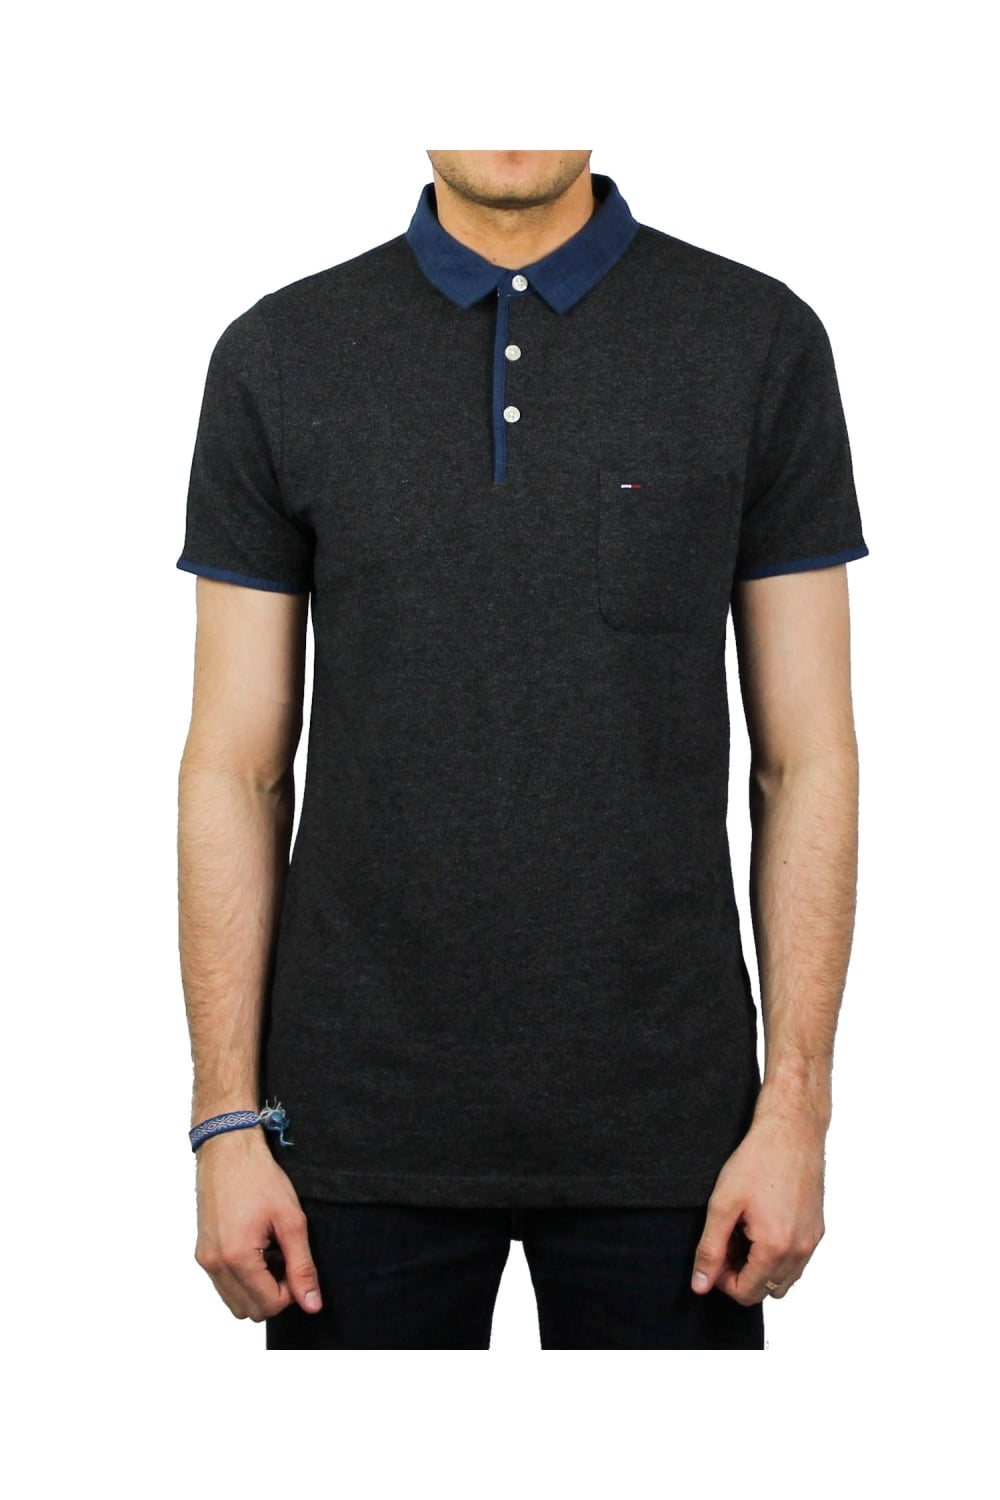 72a2712d5ec5 Tommy Hilfiger Denim Basic Short-Sleeved Polo Shirt (Ebony)